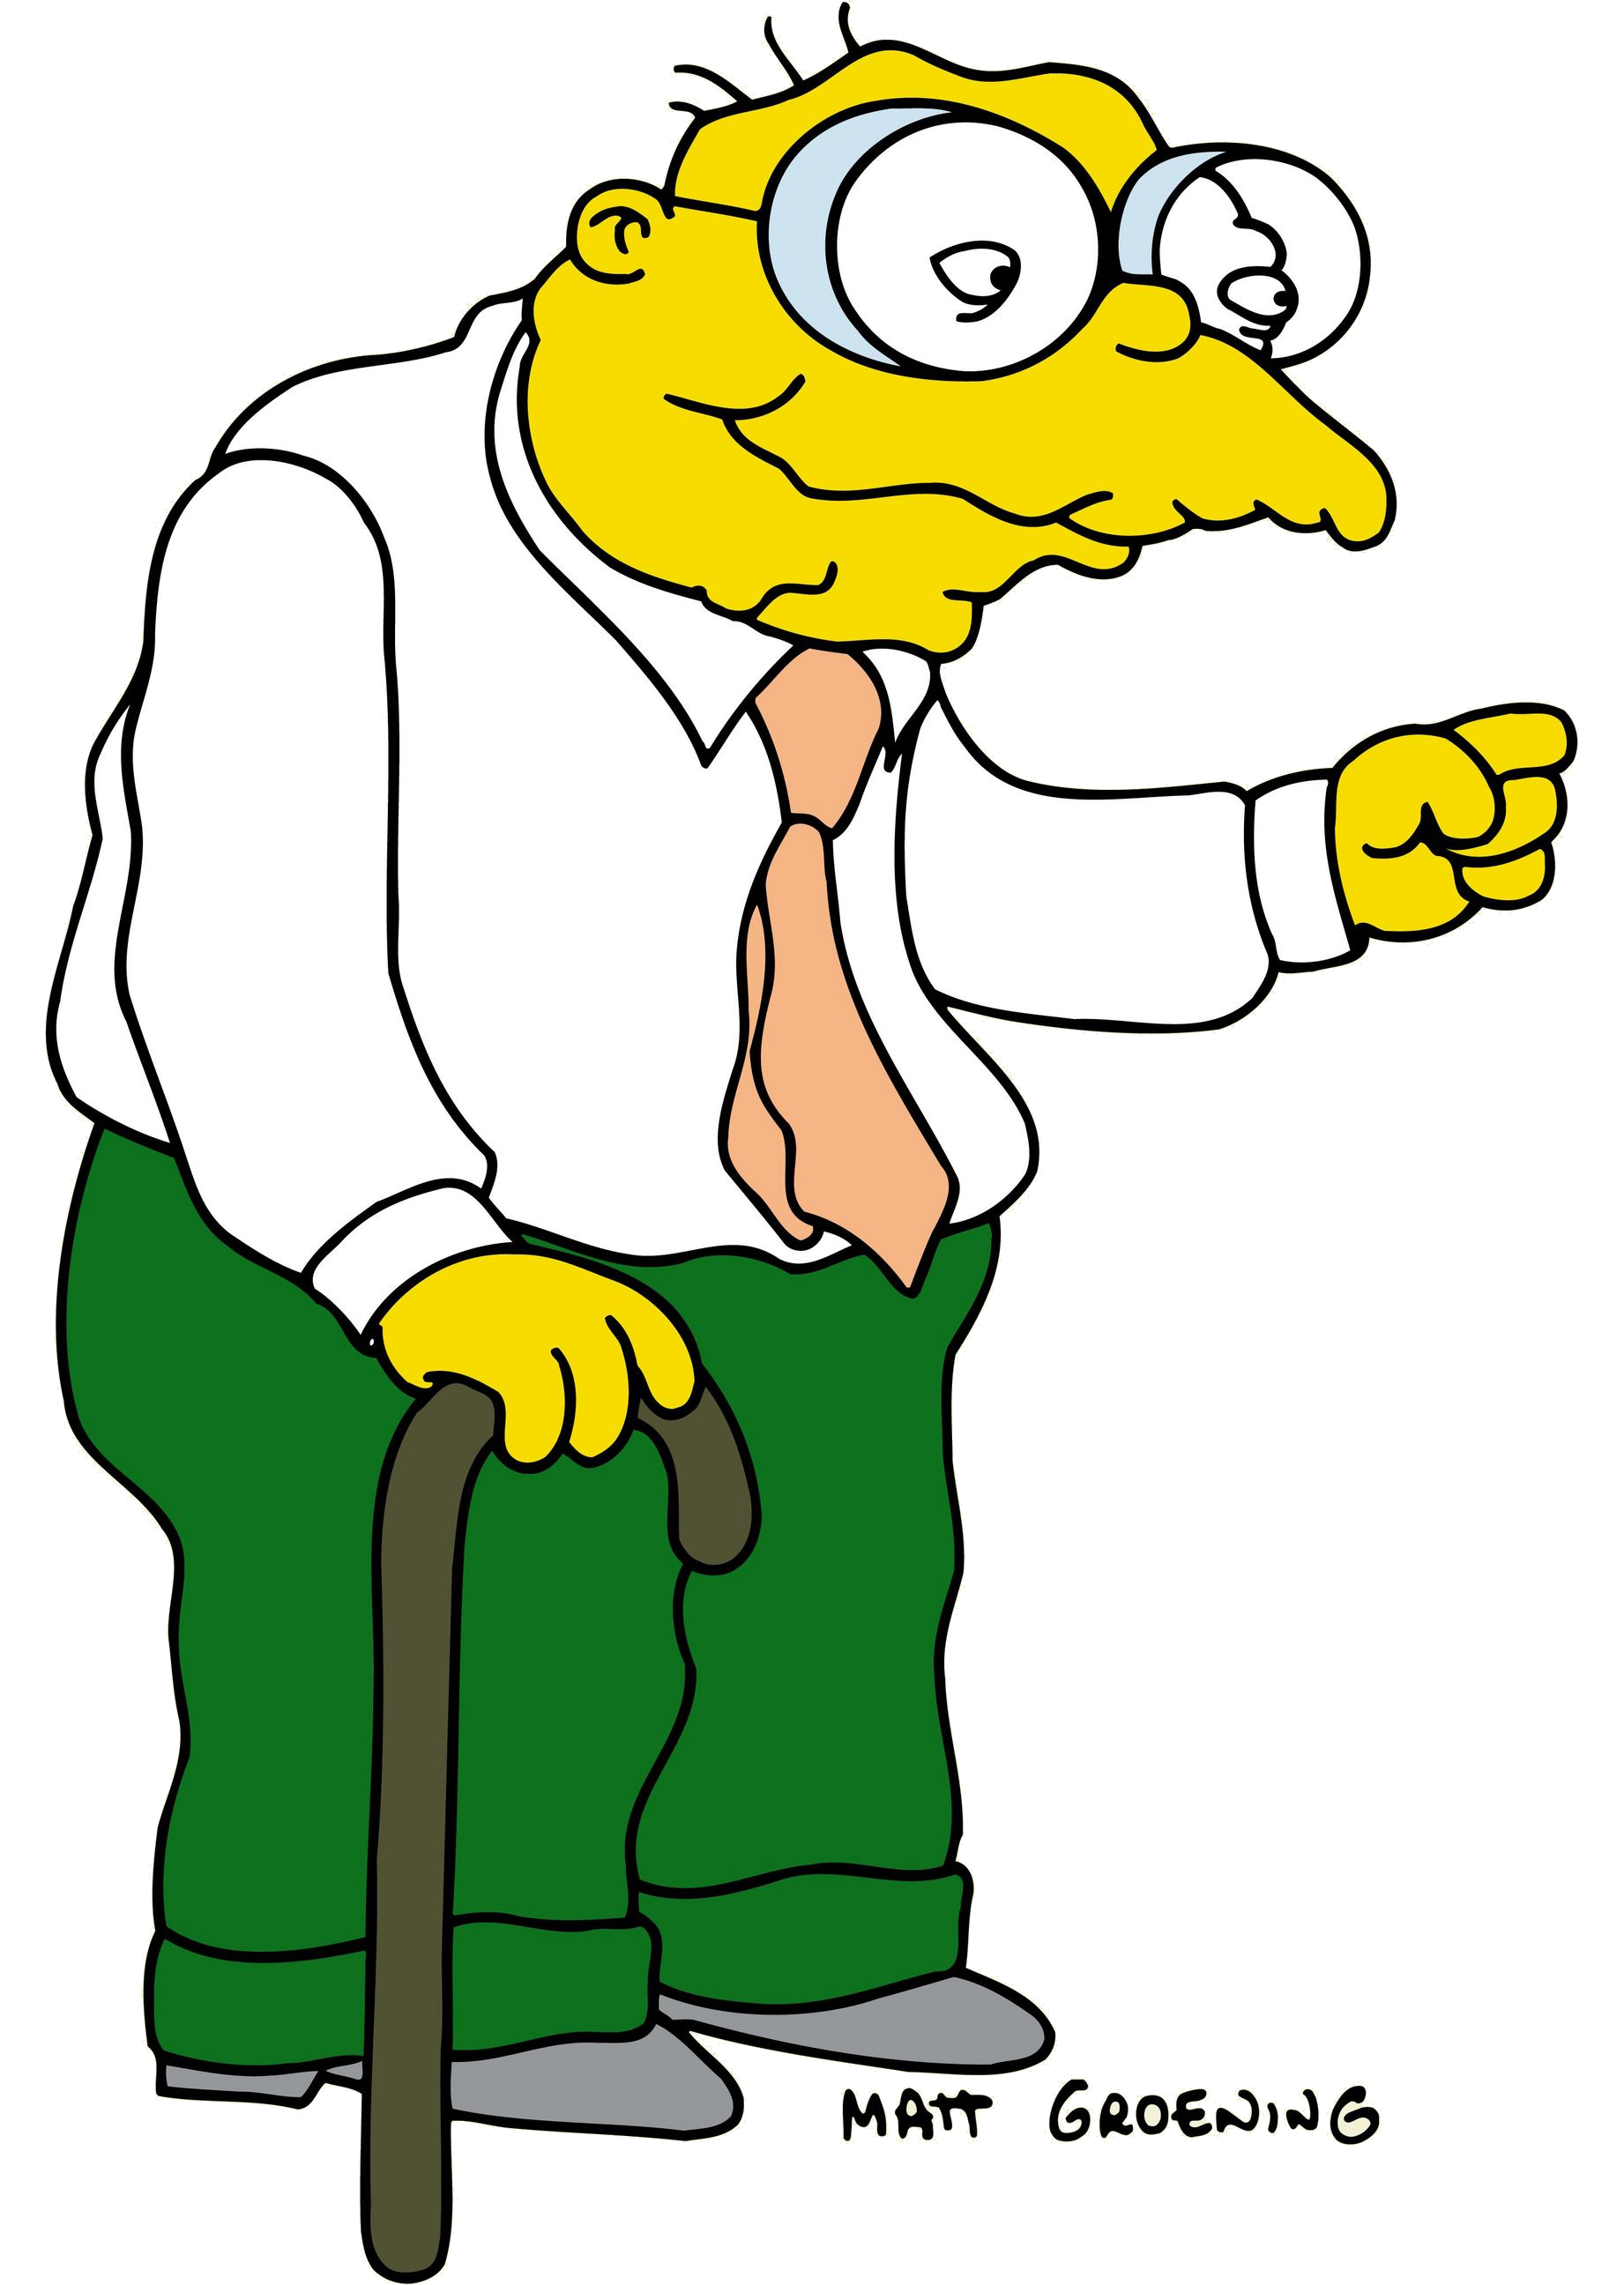 Now you can download Simpsons High Quality PNG